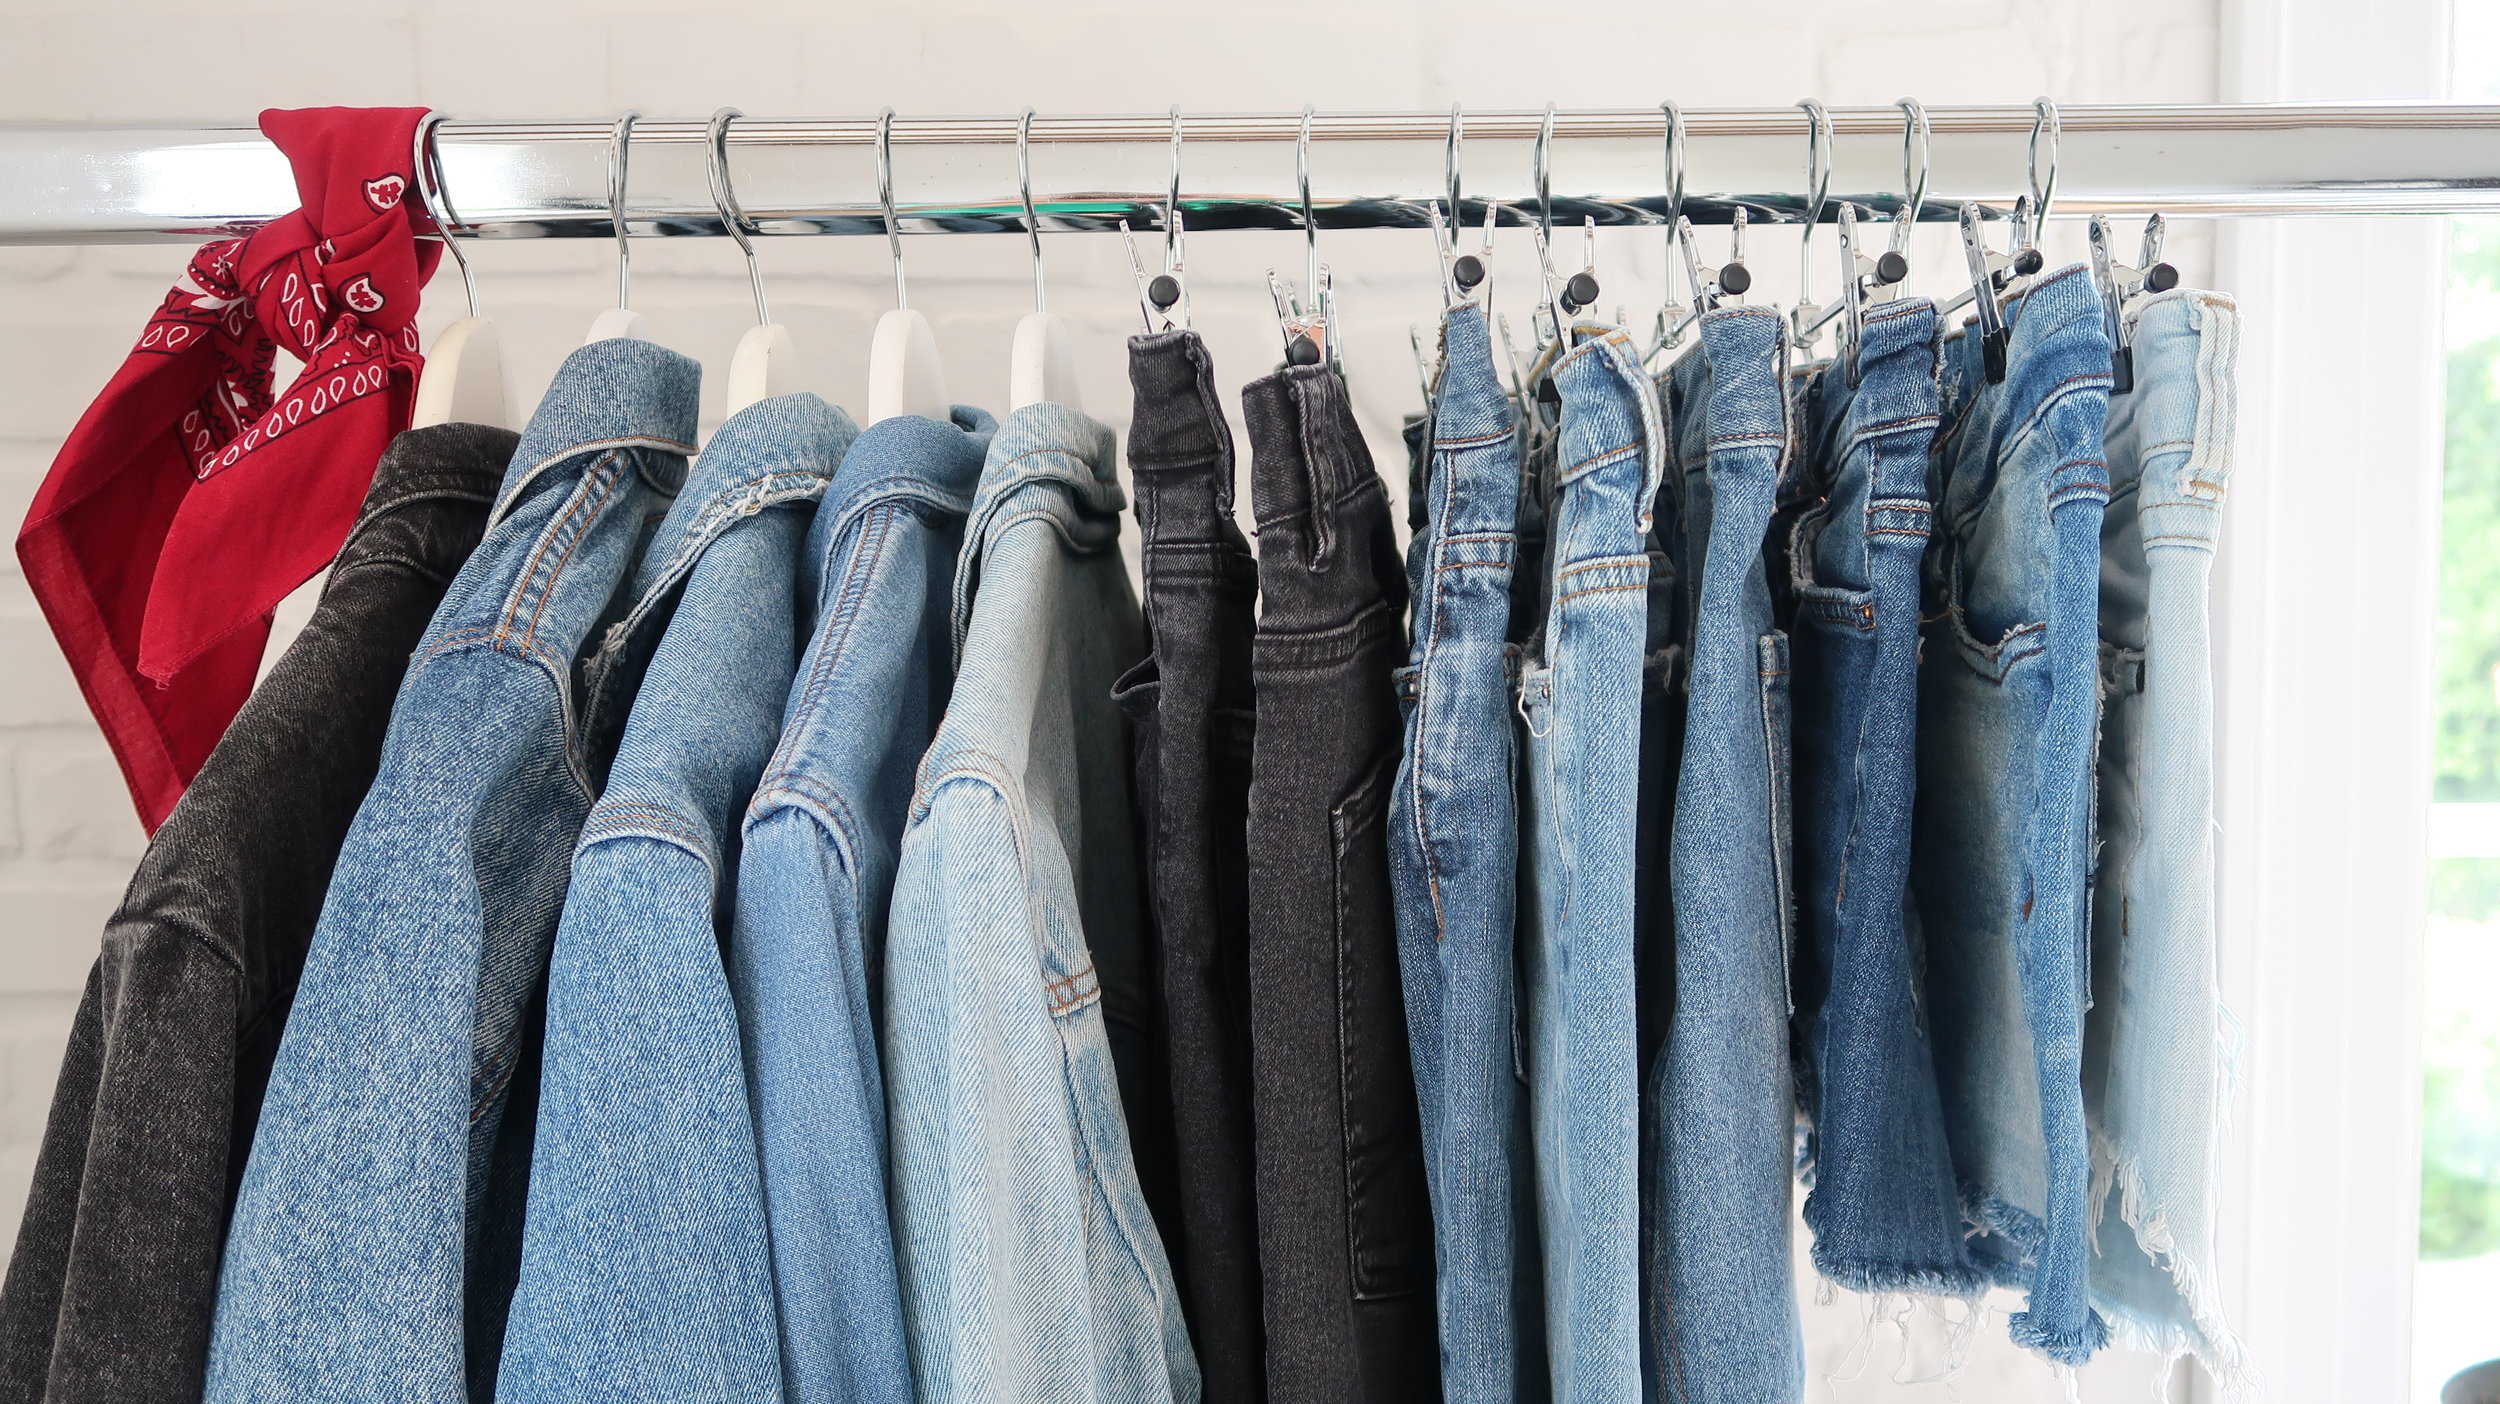 Reworked Denim - It takes 7,600 litres of water to produce just one pair of jeans. By buying denim secondhand you are saving much needed water resources and potentially another piece of clothing from landfill. All denim at Style Resurrection is preloved, distressed by hand and only looks better with age.